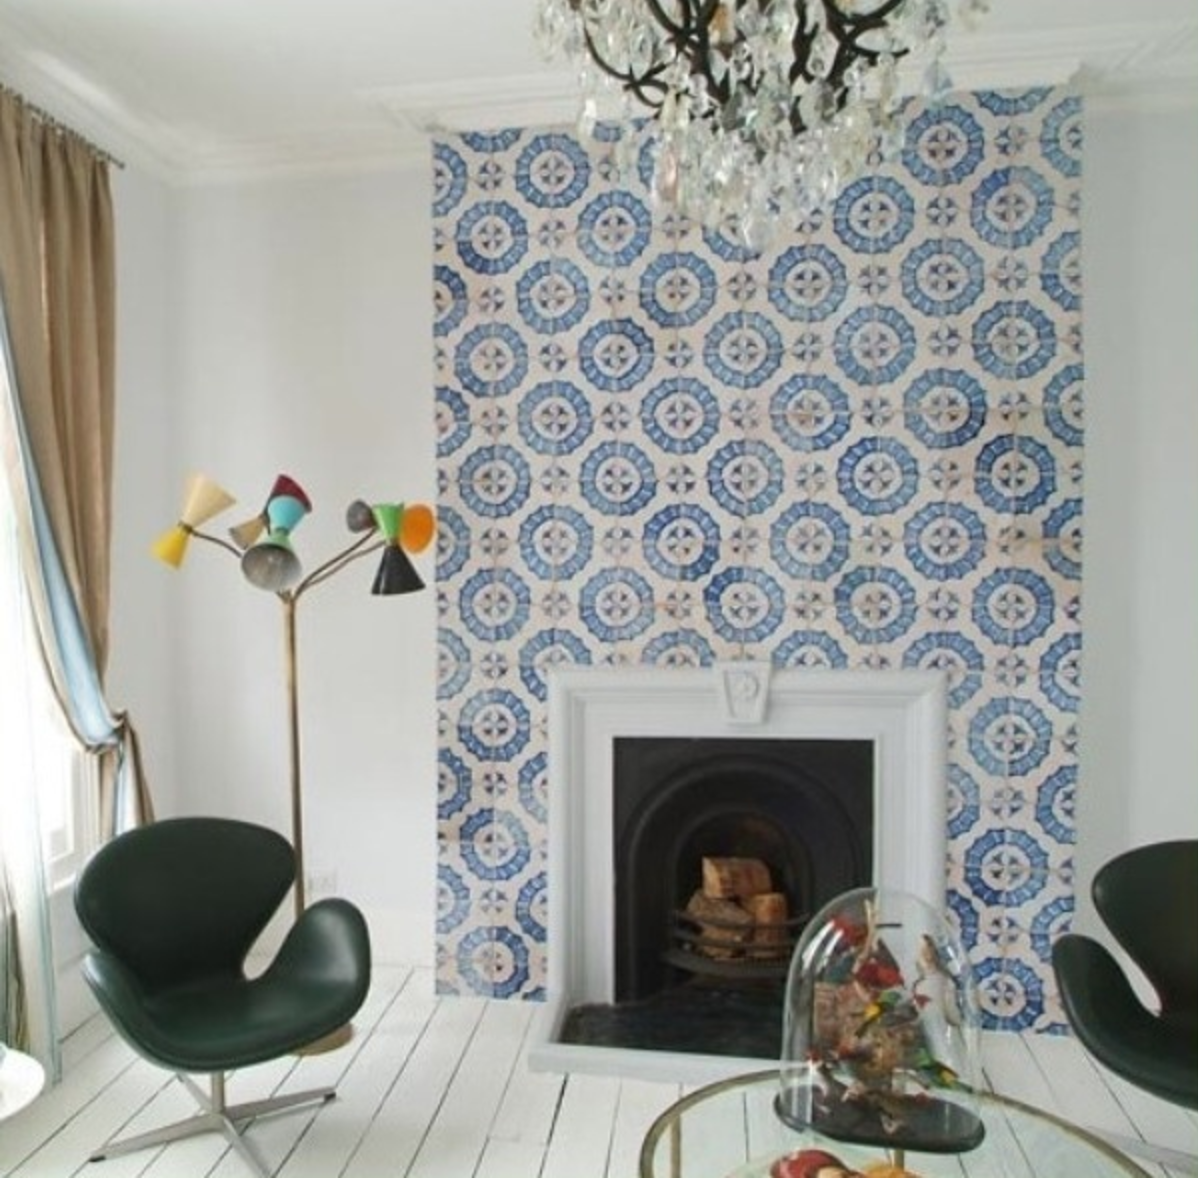 Residential Design Cement Tile | Interior Design Dallas | Barbara Gilbert Interiors